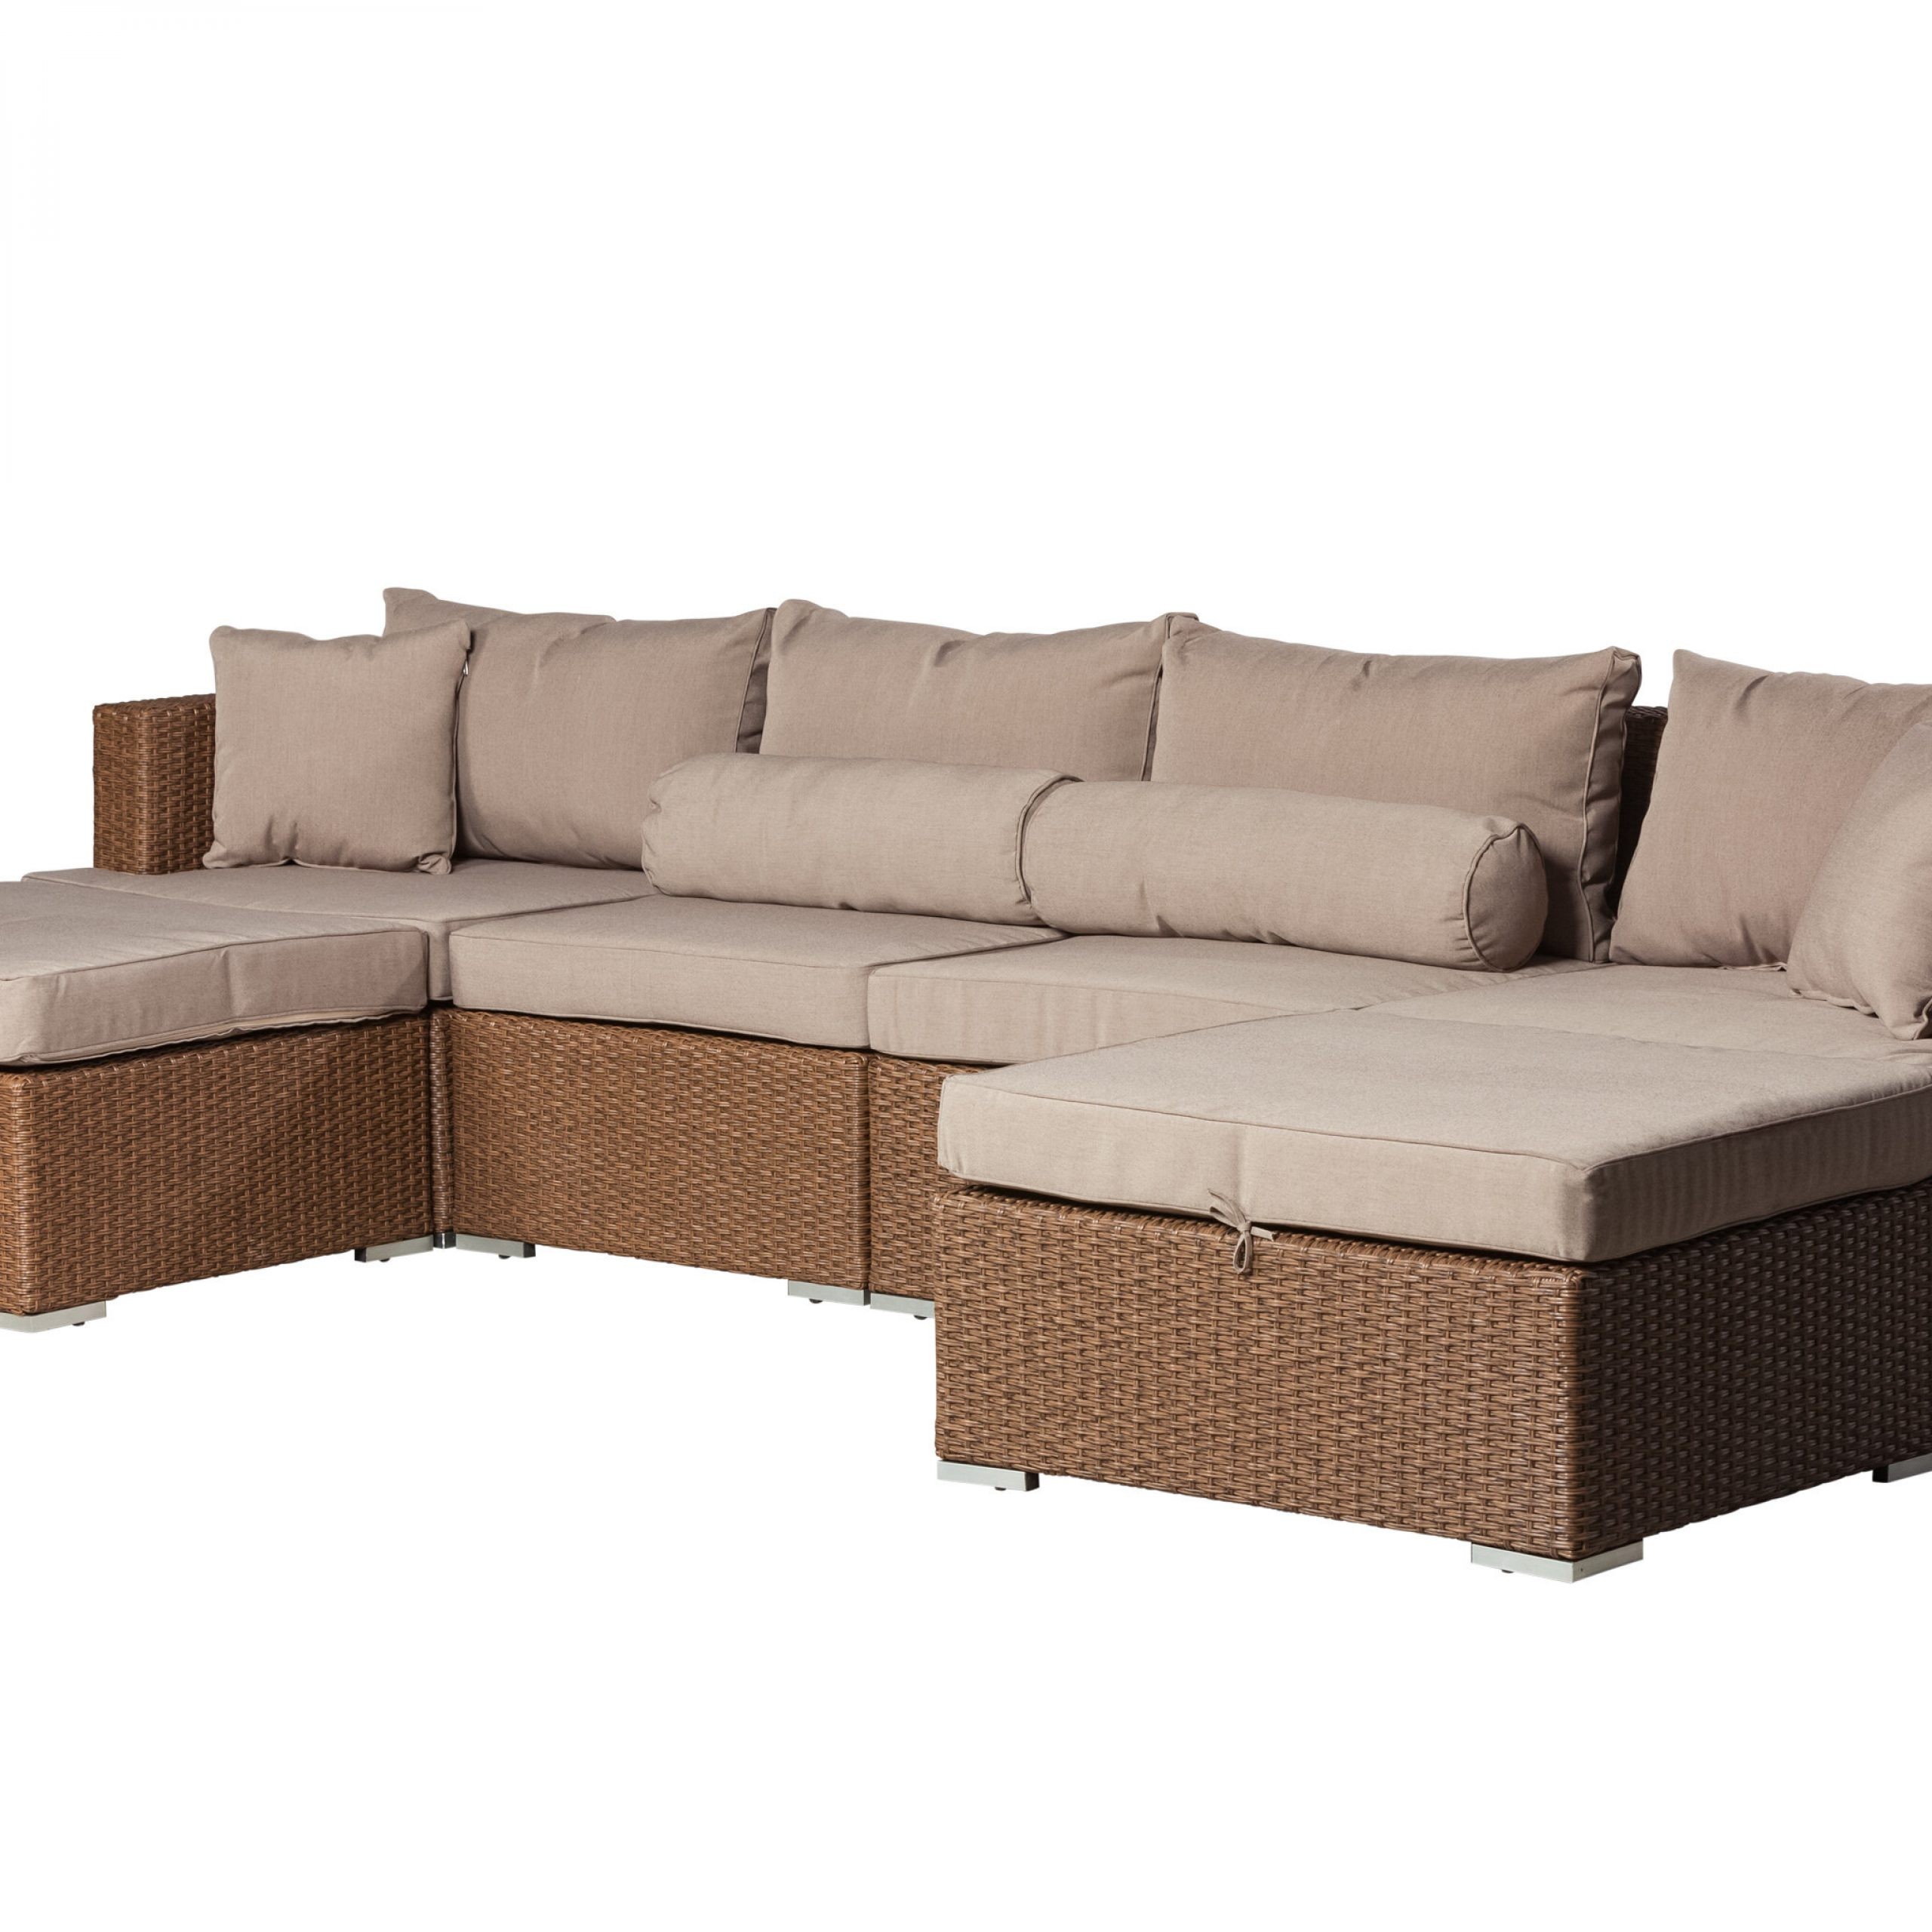 Patiosense Teagarden Patio Sectional With Cushions & Reviews In 2019 Ostrowski Patio Sectionals With Cushions (View 4 of 25)